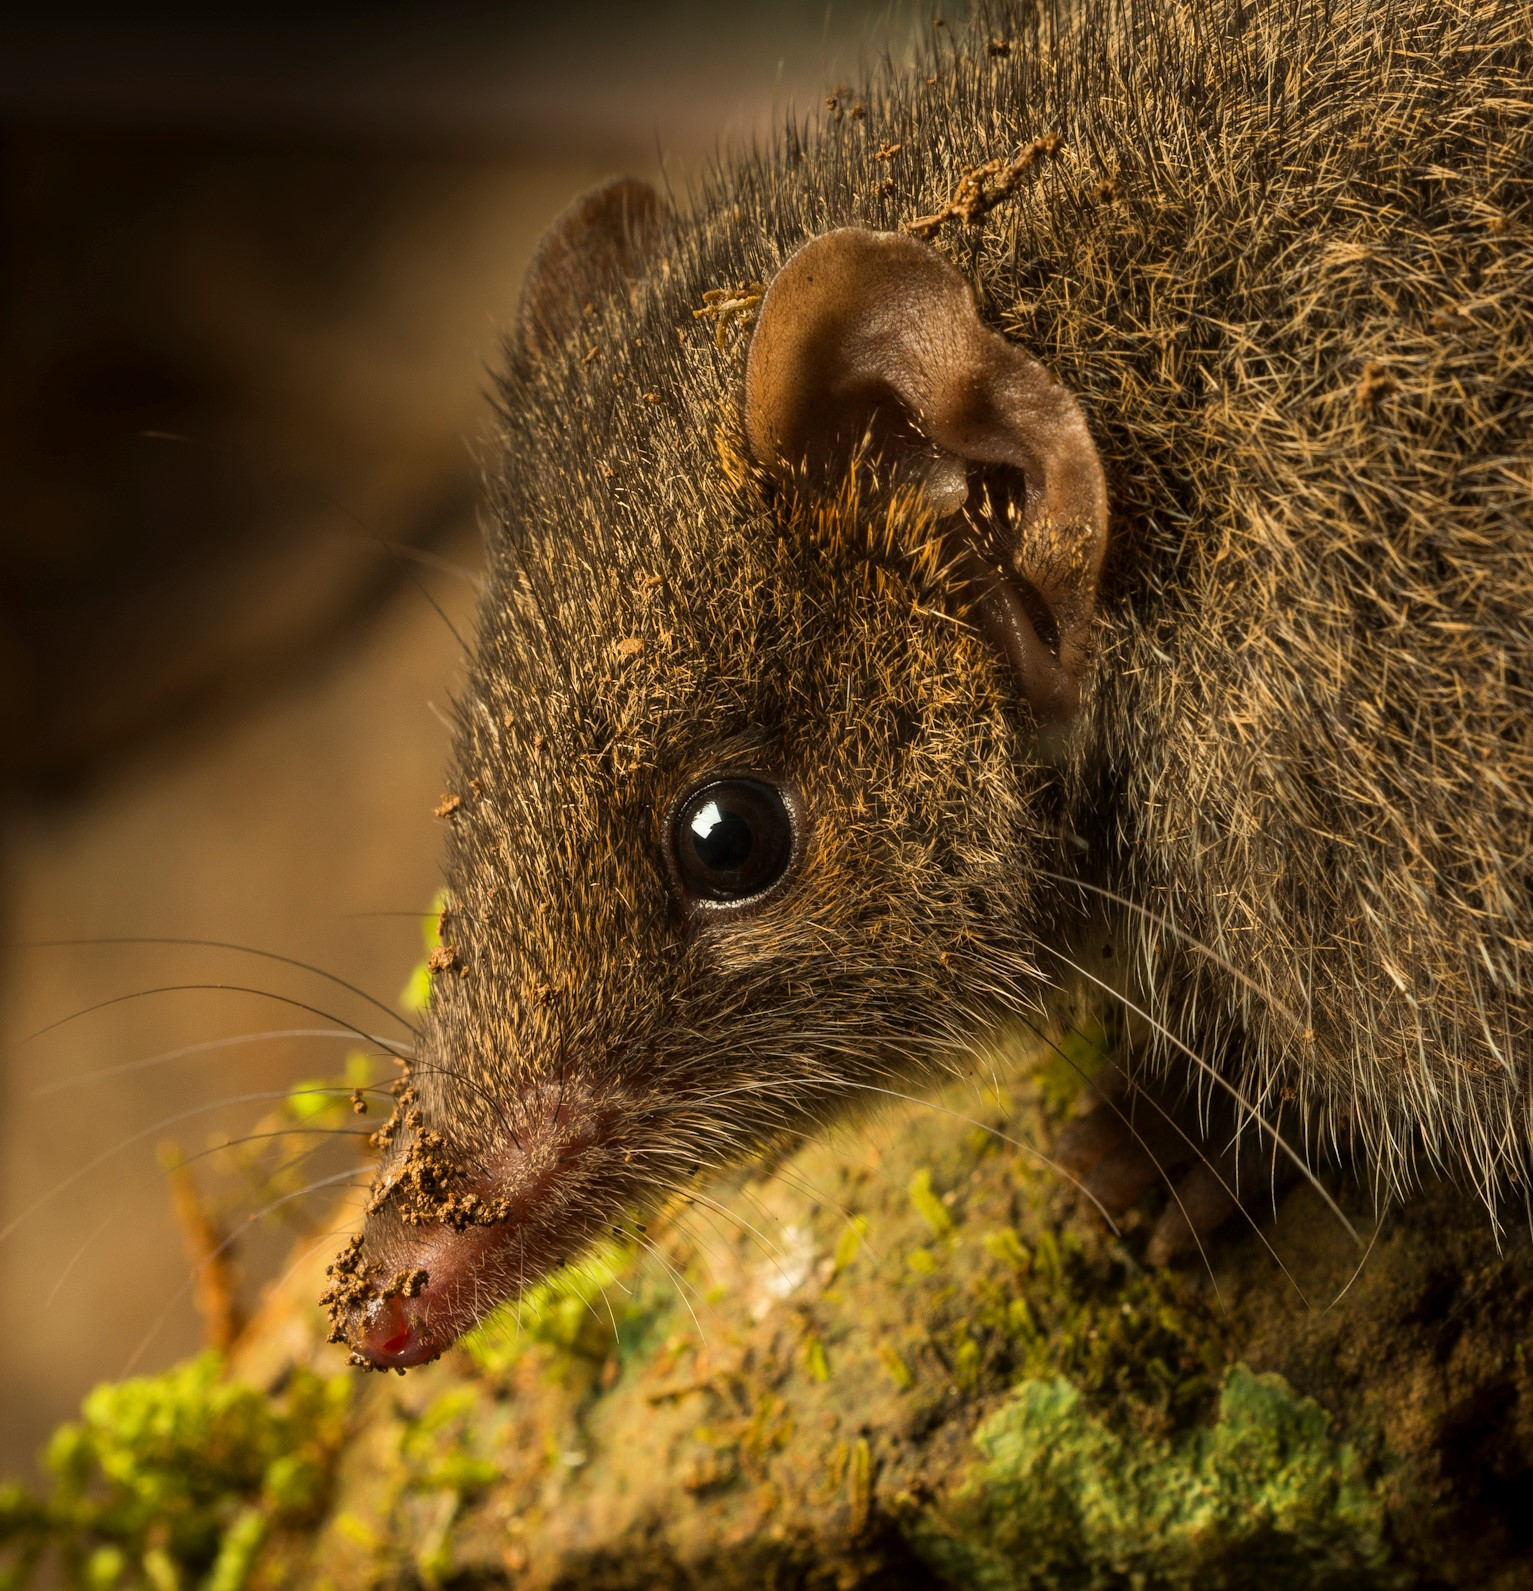 The black-tailed dusky antechinus was only discovered five years ago in Australia and now the researcher who identified it fears it could be on the brink of extinction as a result of climate change and intense bush fires.